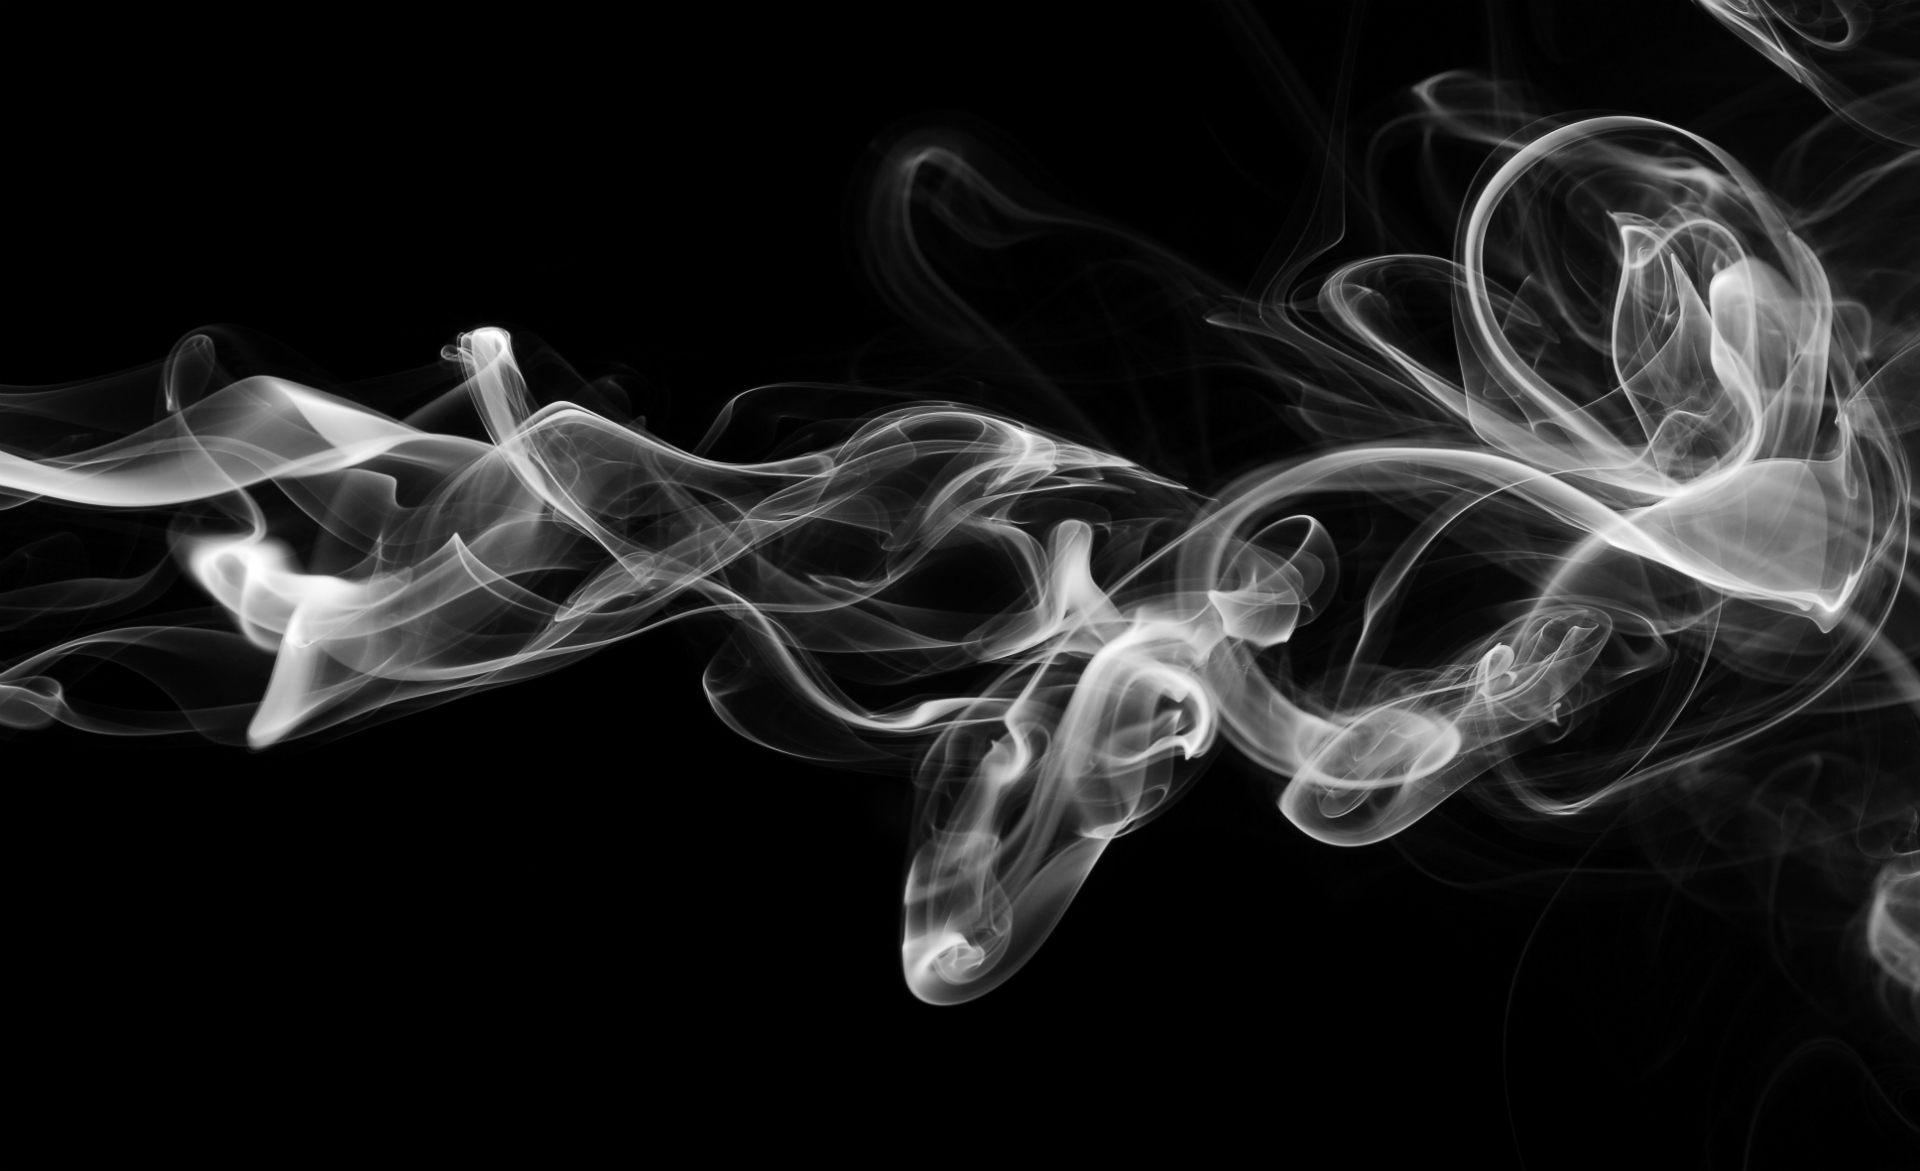 image of cigarette smoke